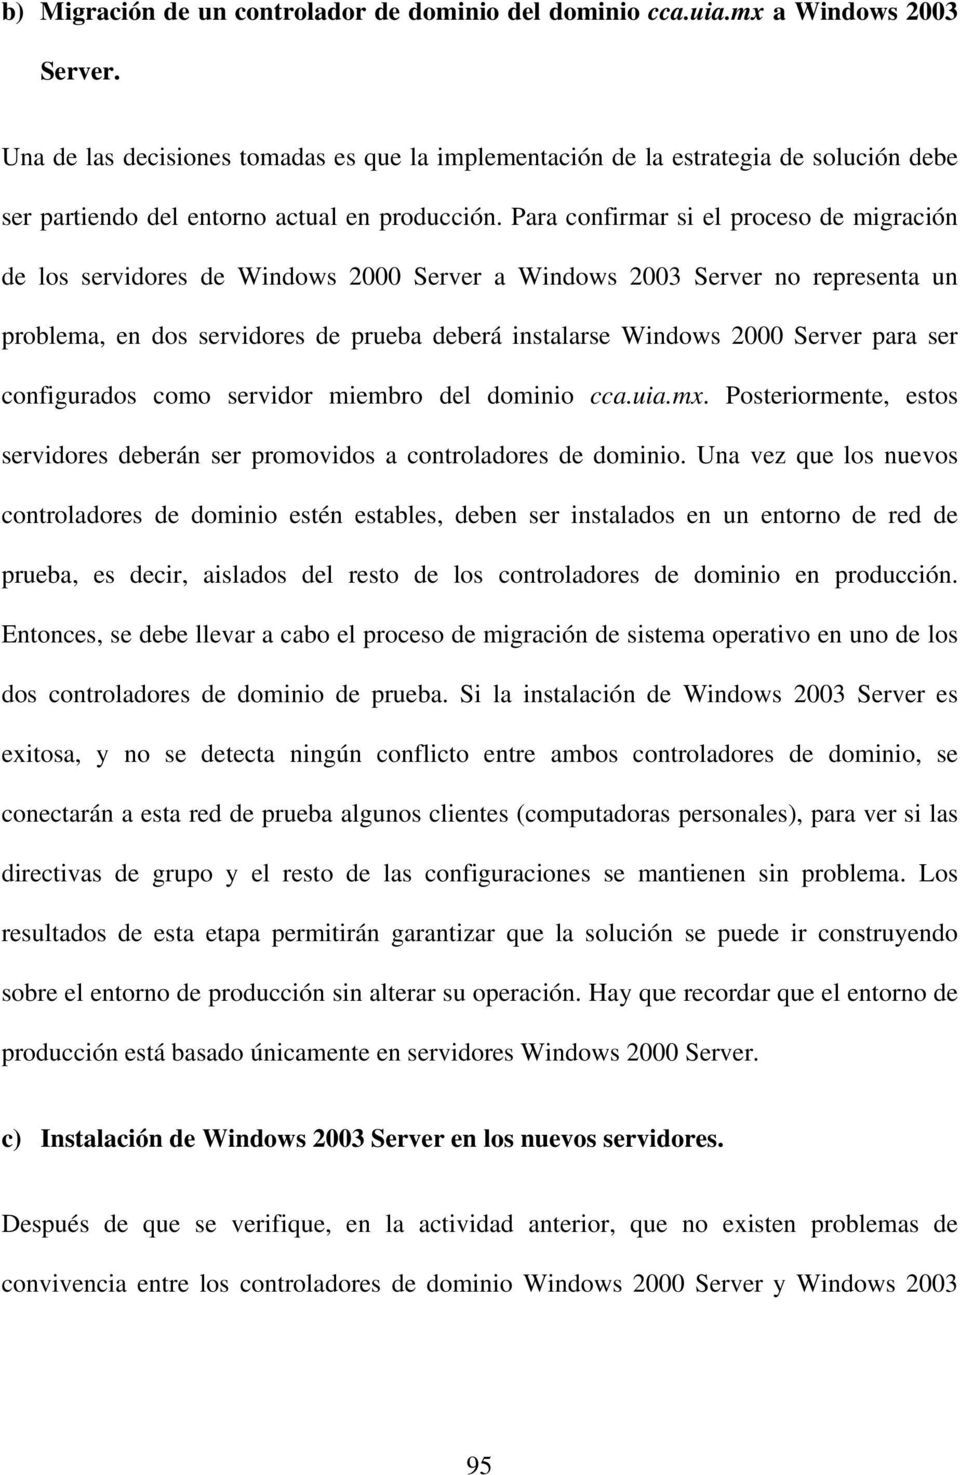 Para confirmar si el proceso de migración de los servidores de Windows 2000 Server a Windows 2003 Server no representa un problema, en dos servidores de prueba deberá instalarse Windows 2000 Server